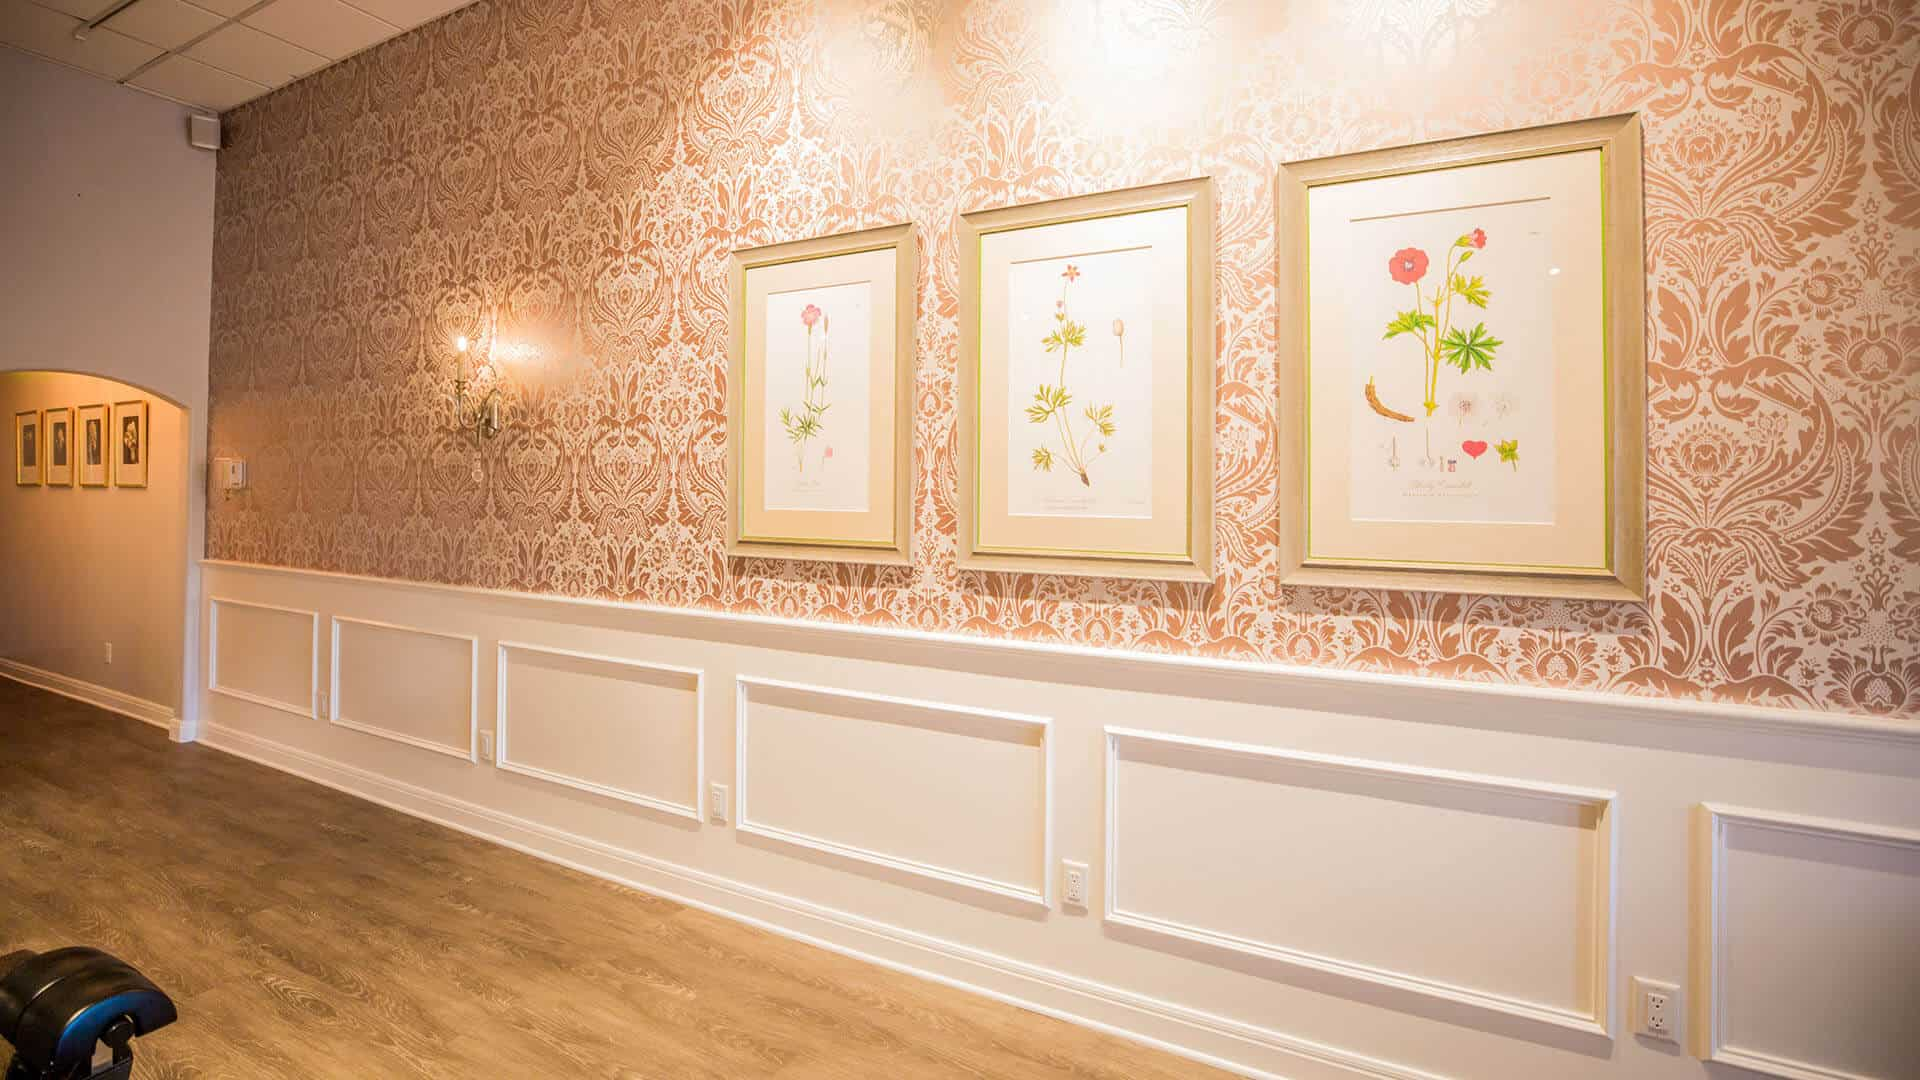 COCO nailboutiqe interior design by DIG53 - wallpaper and custom botanical prints